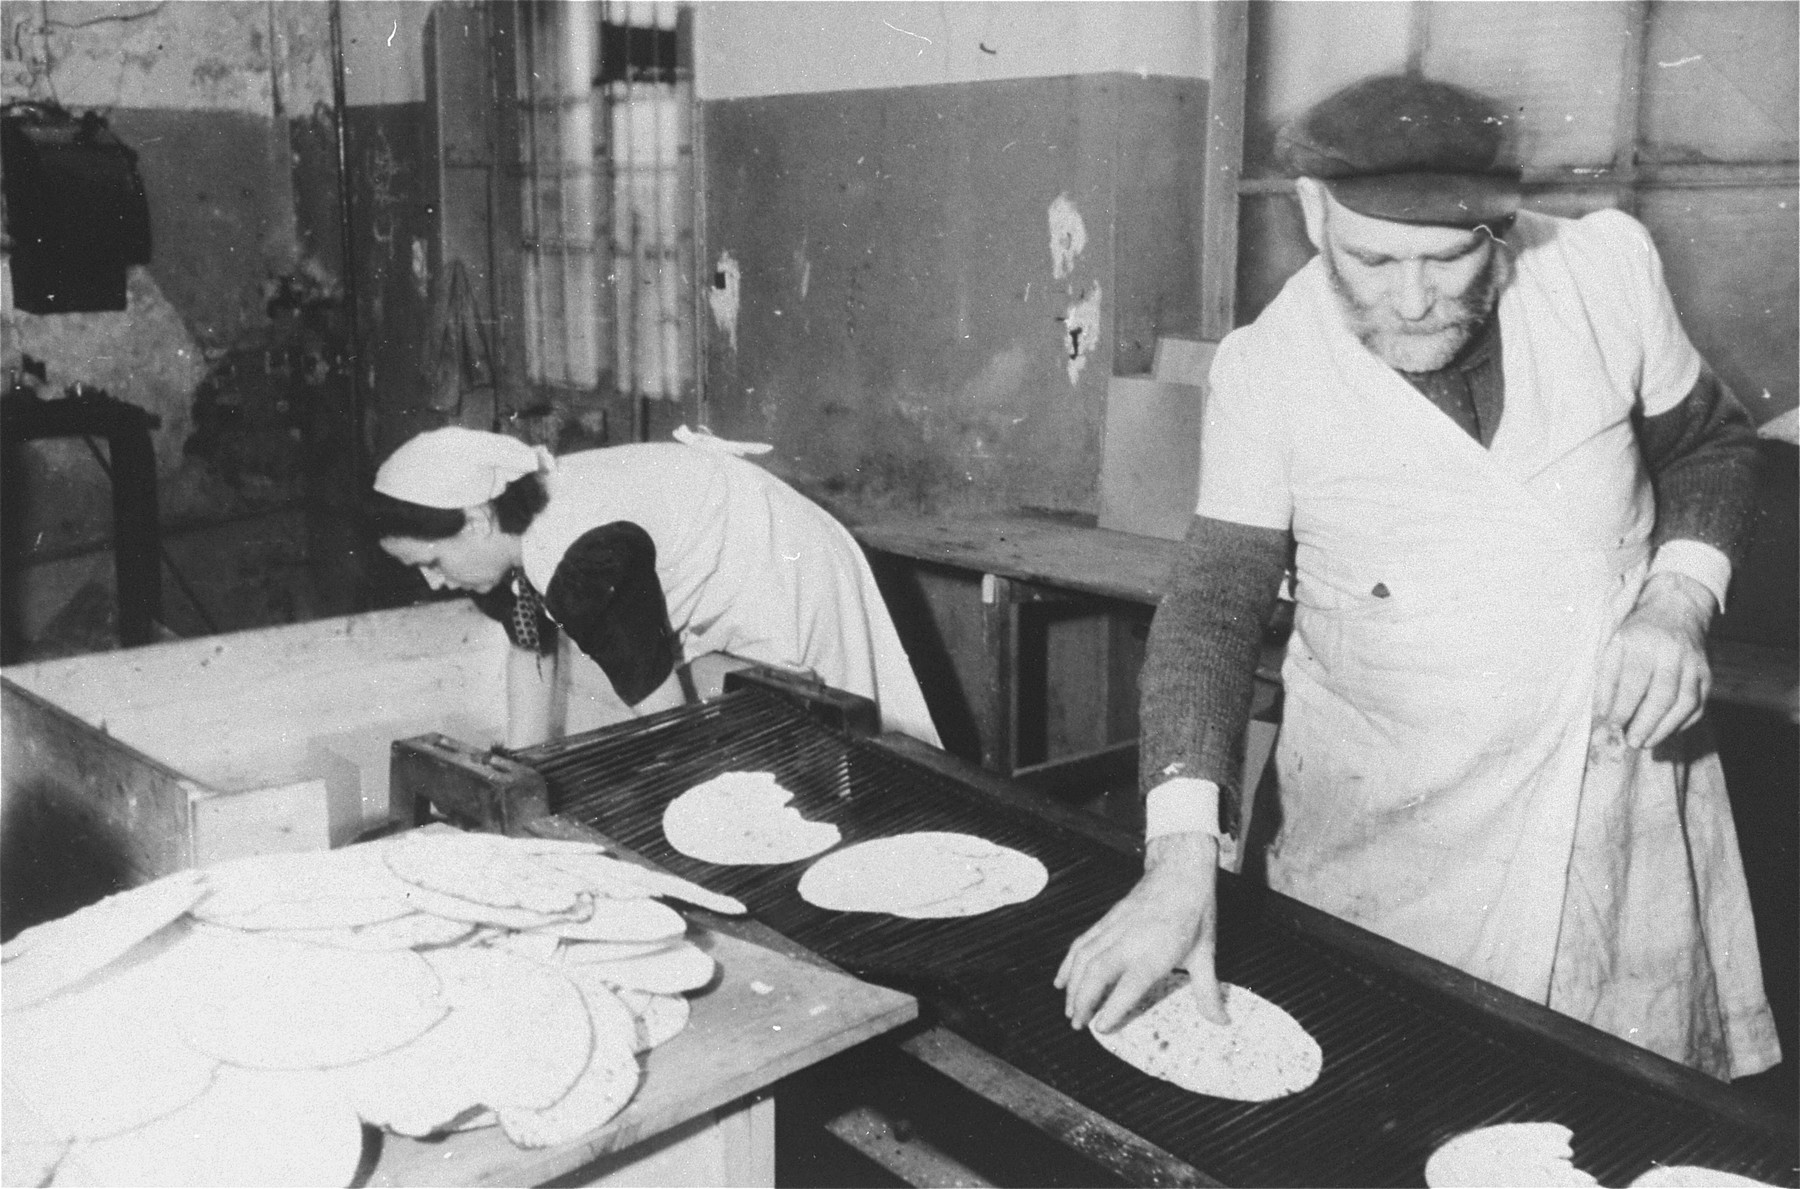 Two workers bake matzah at a bakery in Frankfurt that escaped destruction by the Nazis.